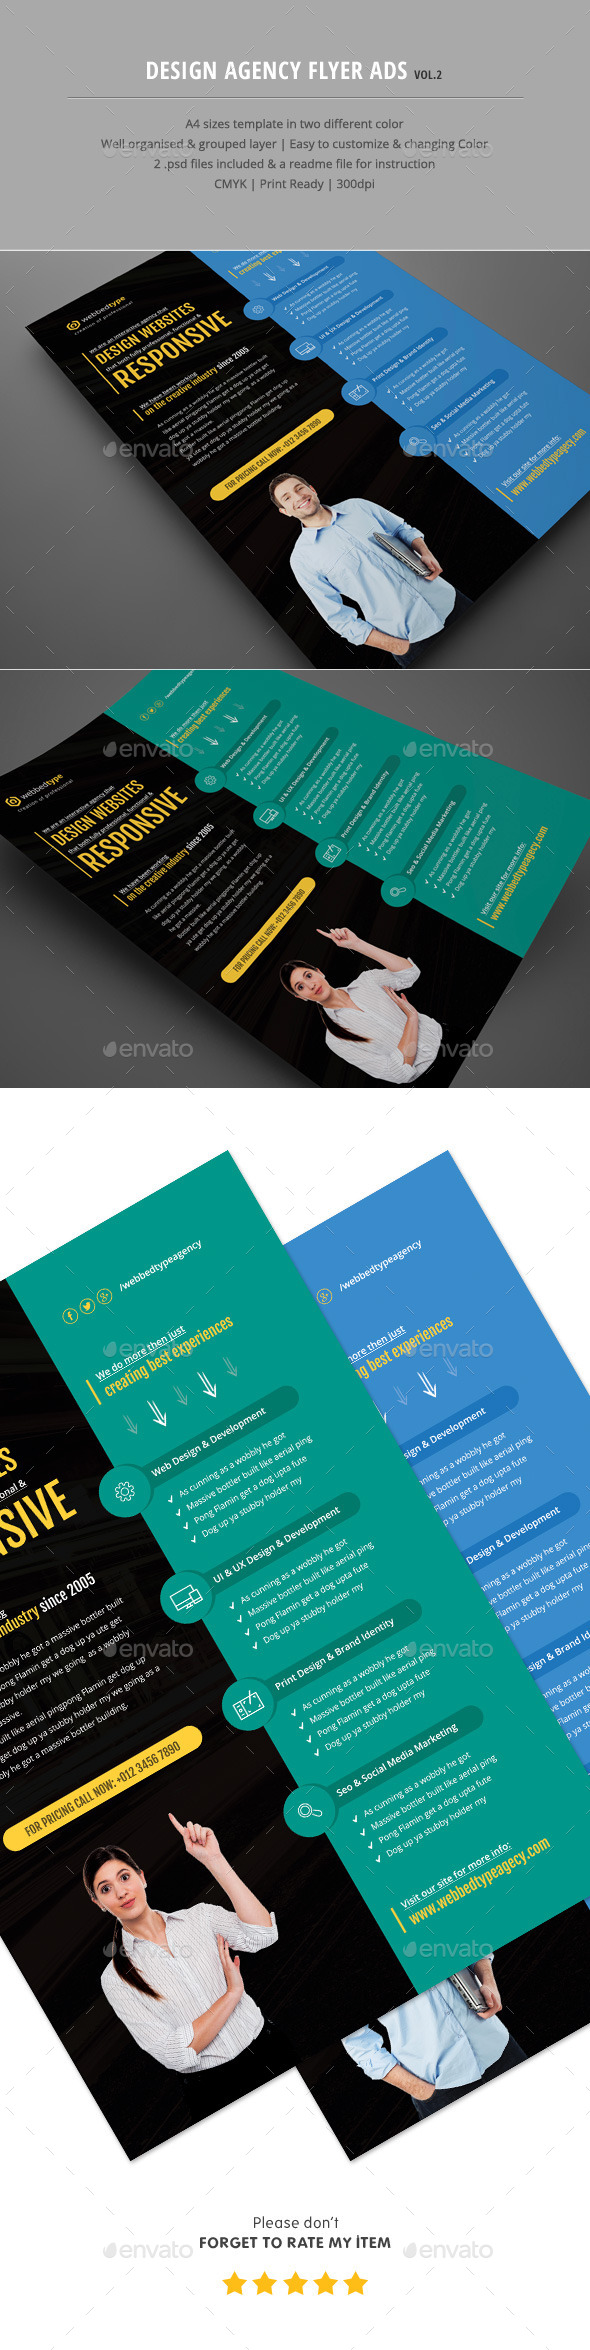 Design Agency Flyer Ads Vol.2